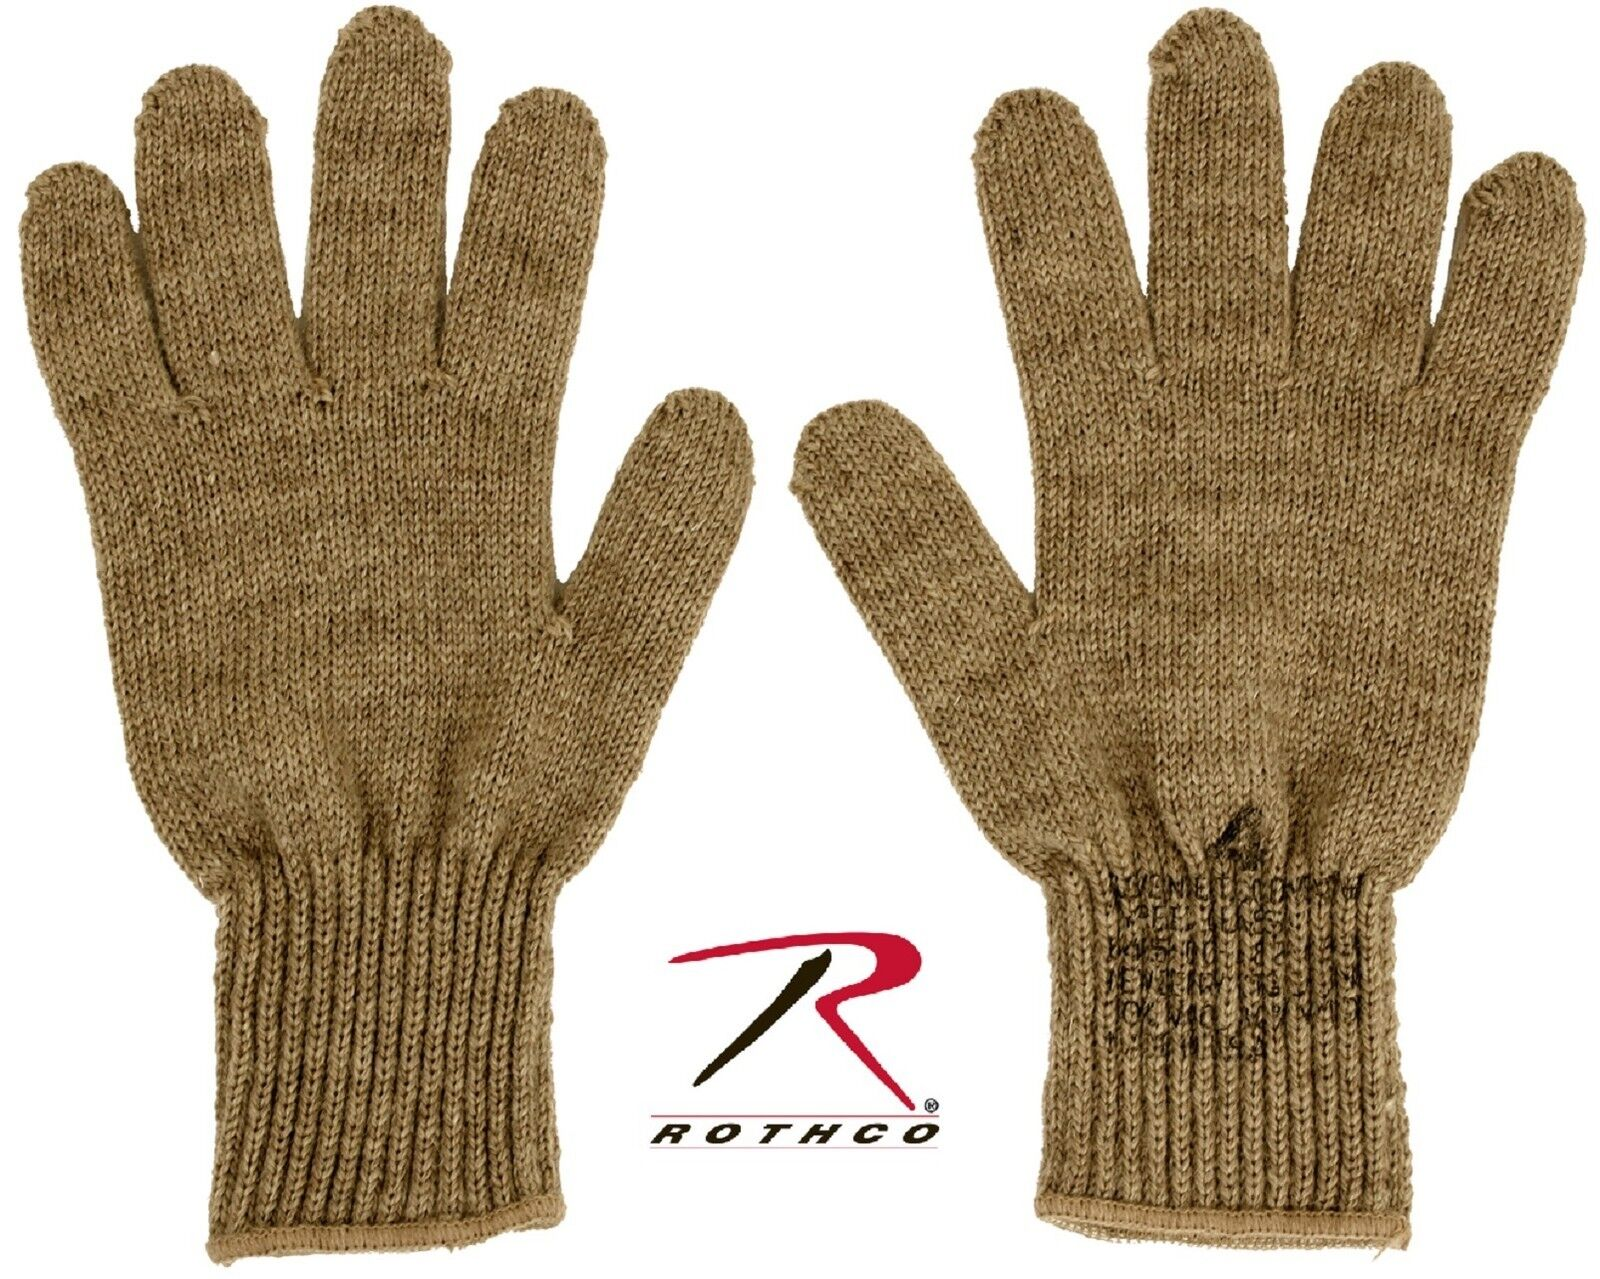 Rothco Coyote Brown Glove Liners - Wool & Nylon Winter Gloves Liner